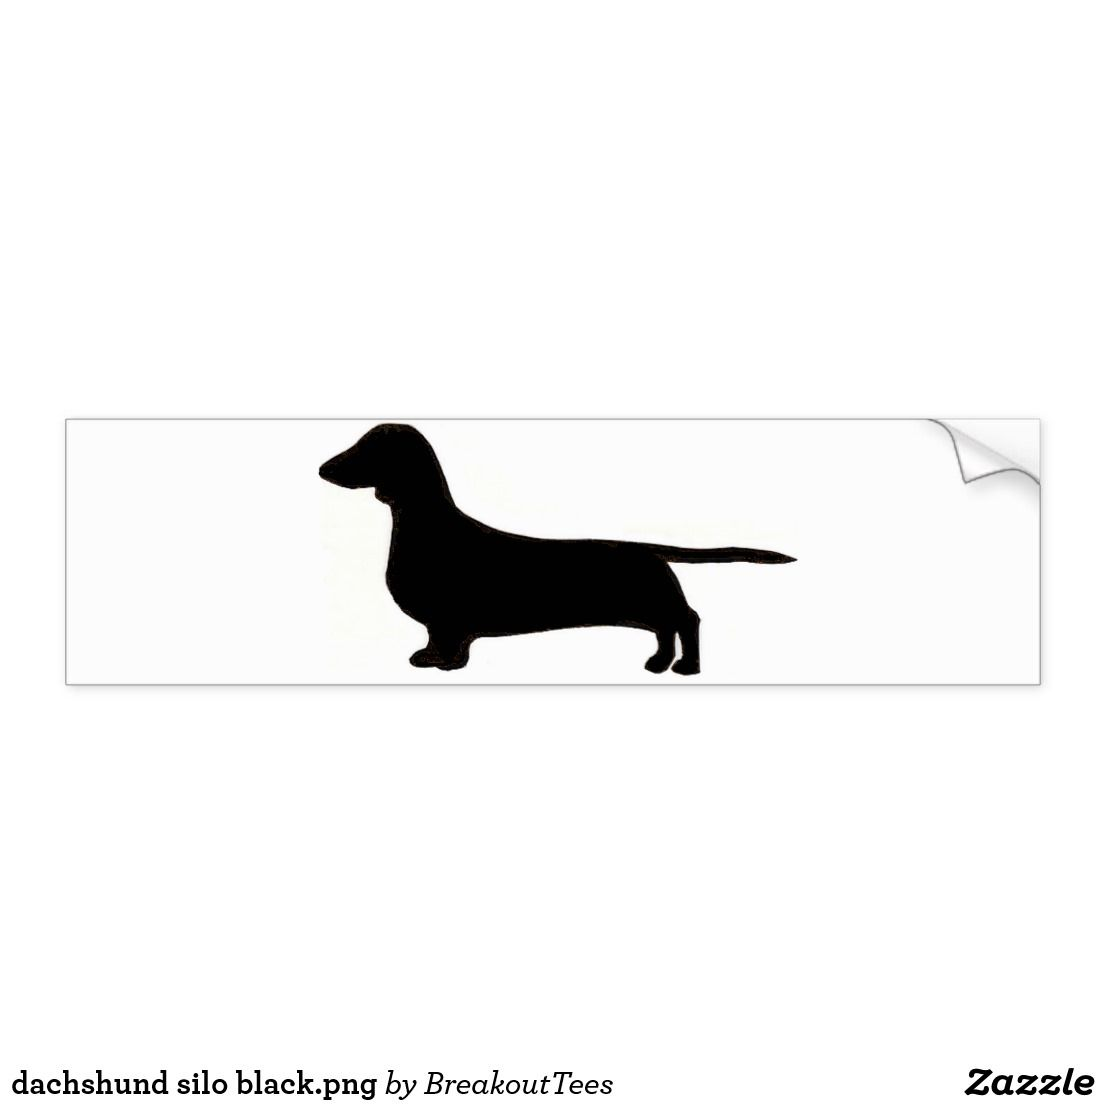 Custom Personalized License Plate Auto Tag With Dachshund Dog Breed Add Names